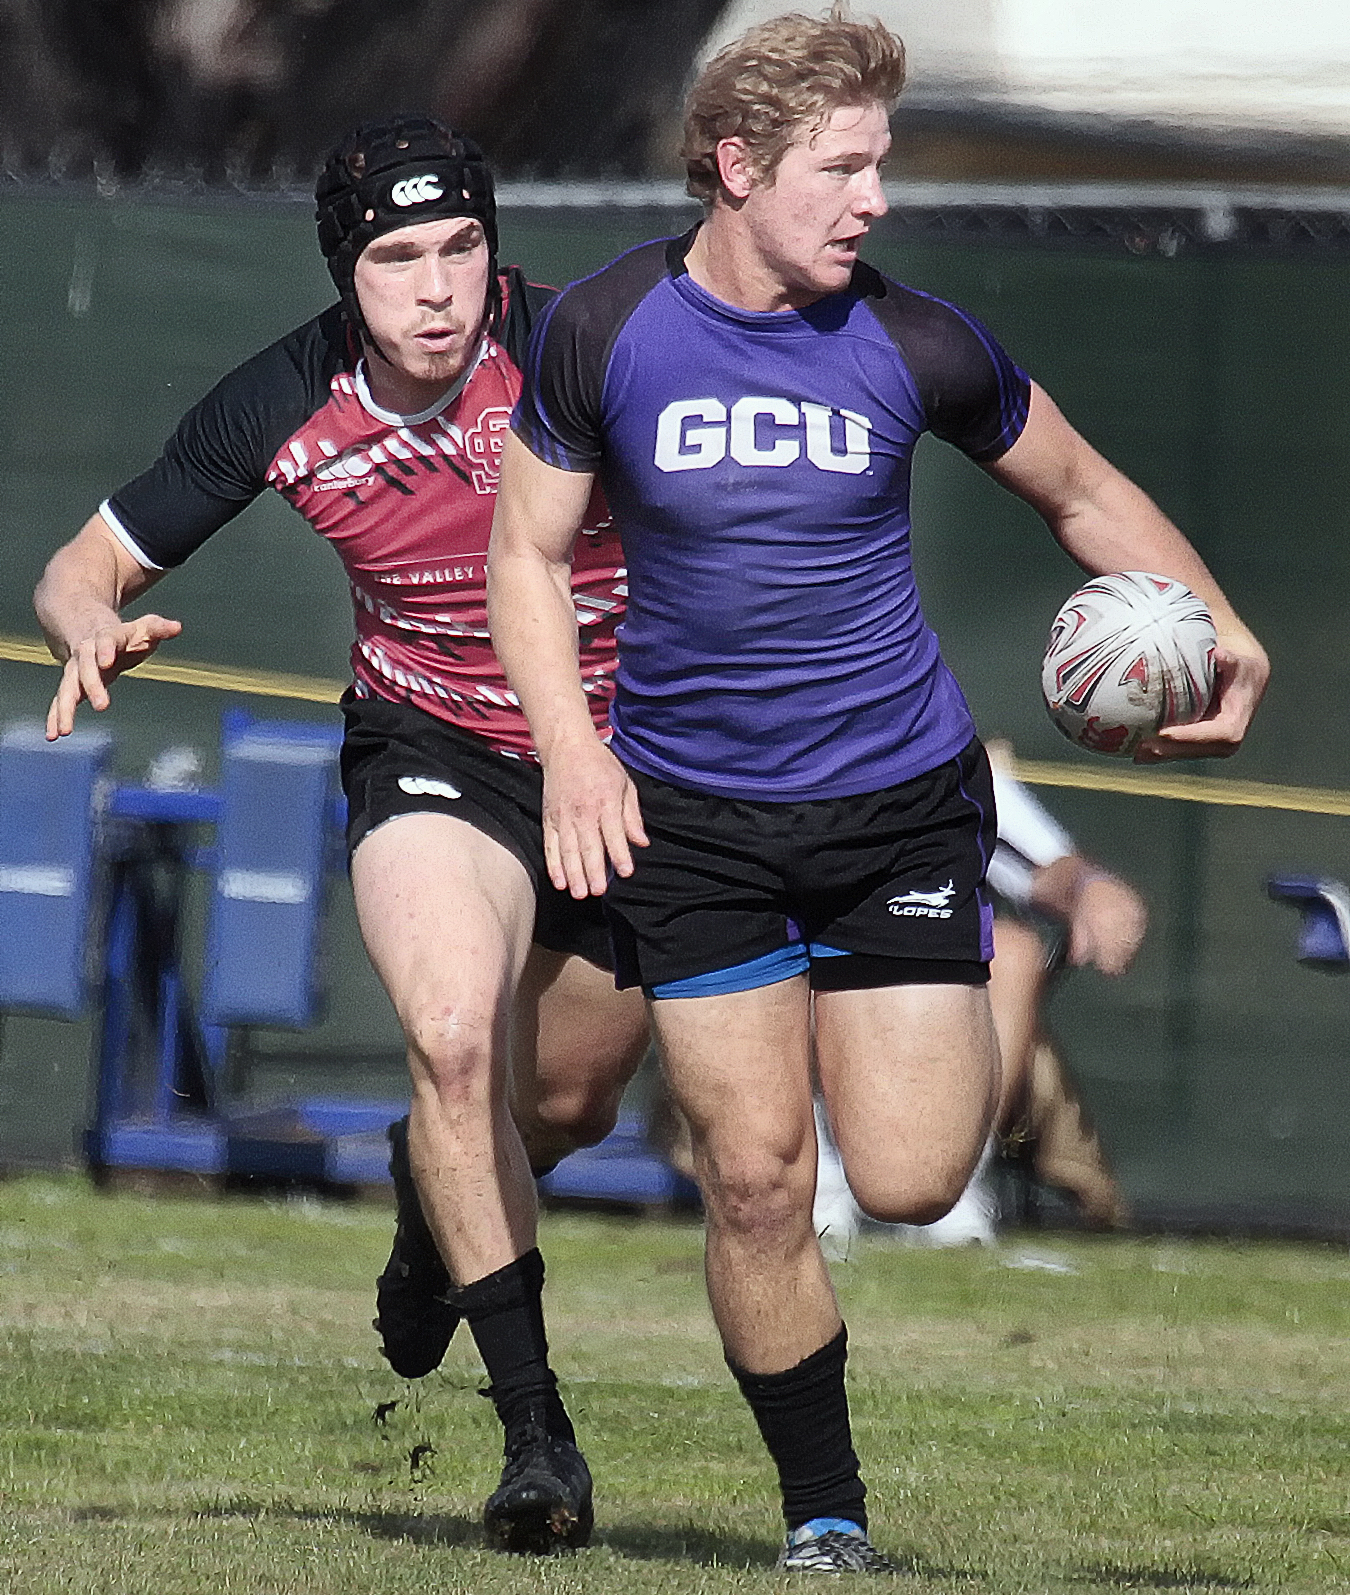 West Coast 7s October 22-23 2016. Michael Geib photo.